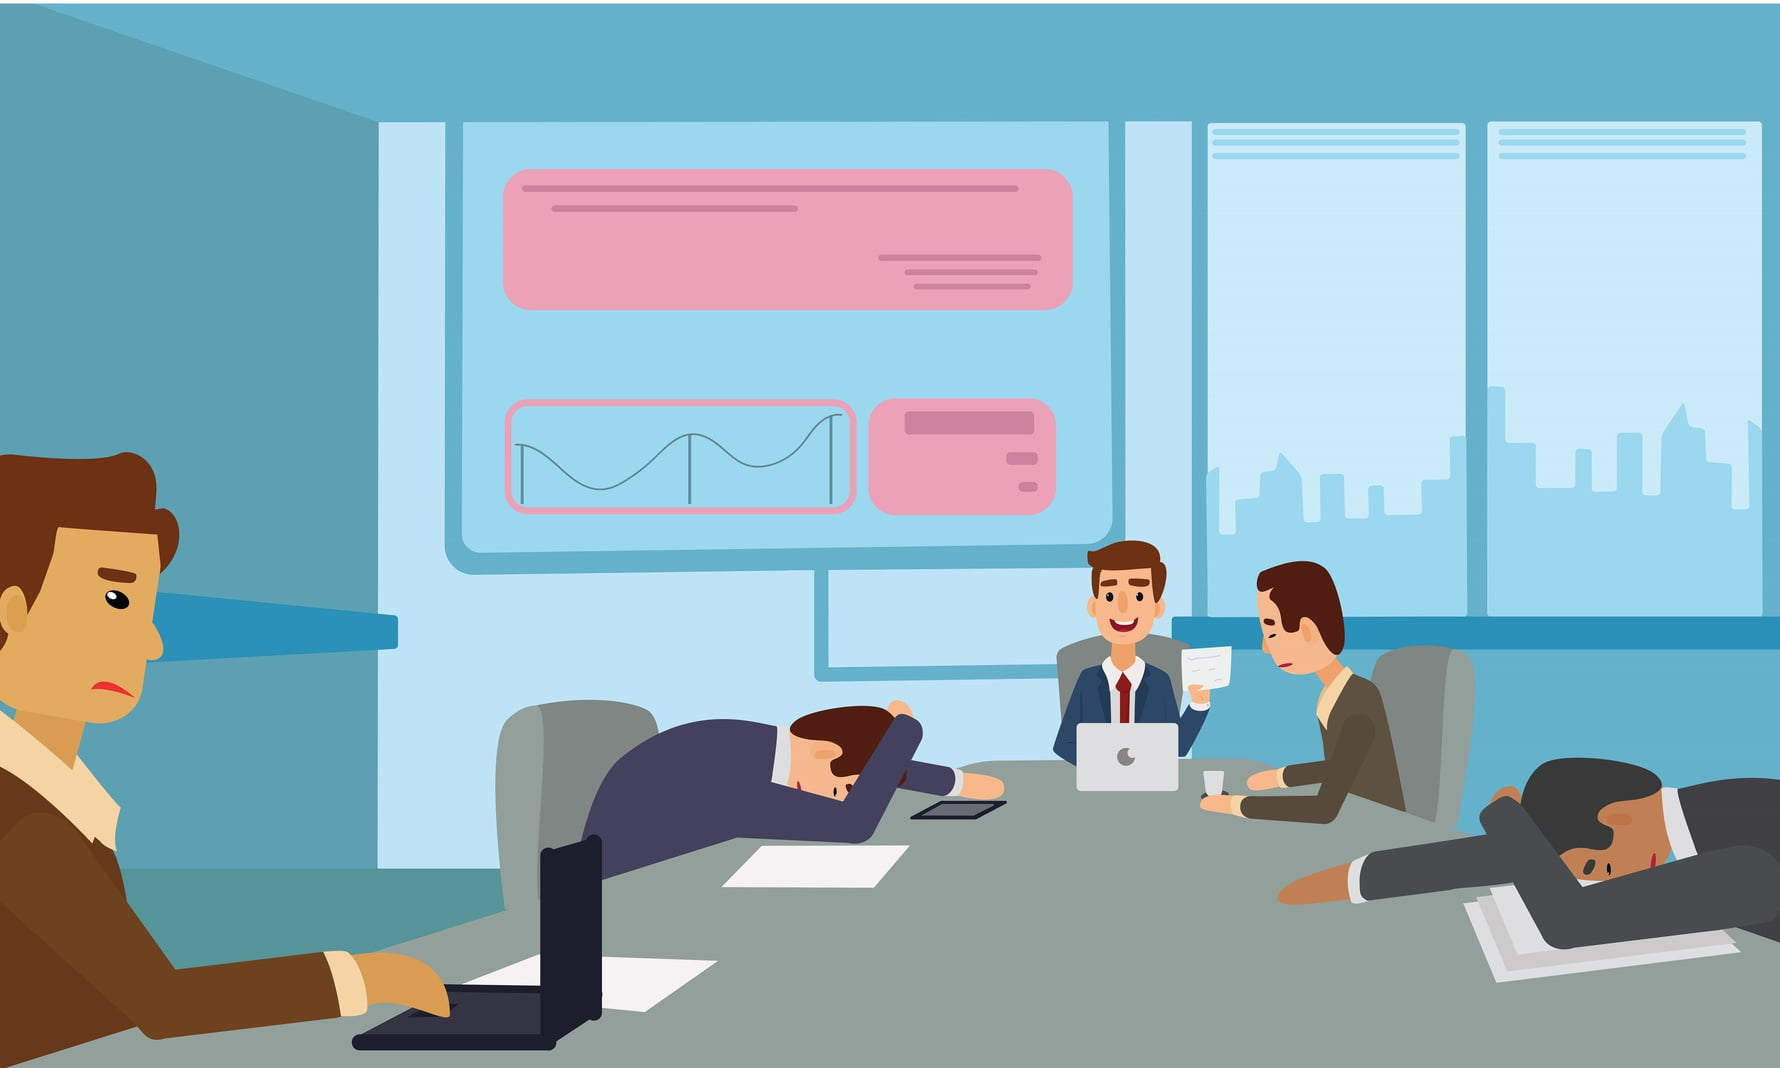 illustrated image of employees sitting at a table working on computer and some with heads down